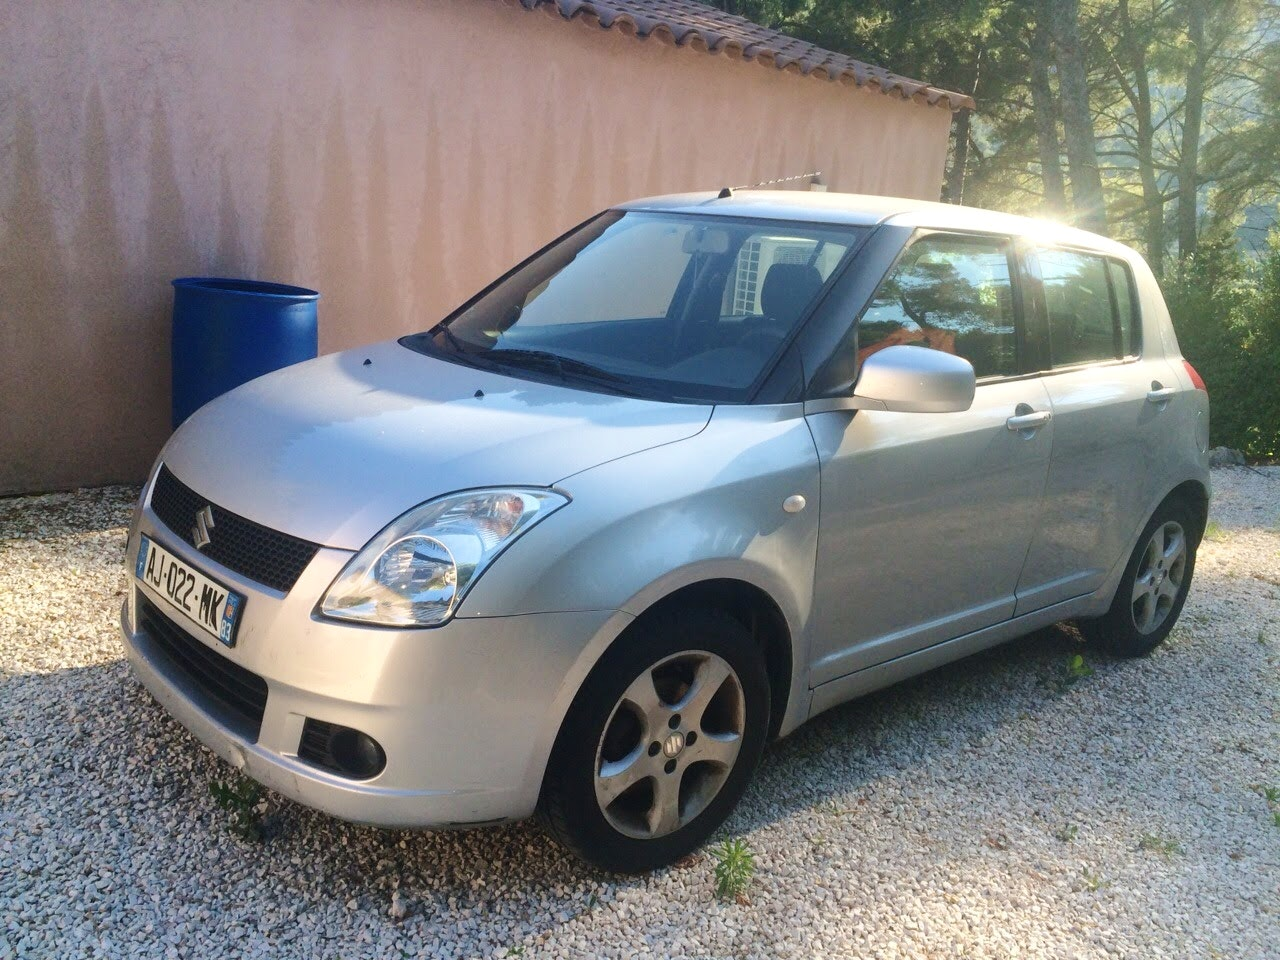 Suzuki Swift, 2012, Essence, automatique